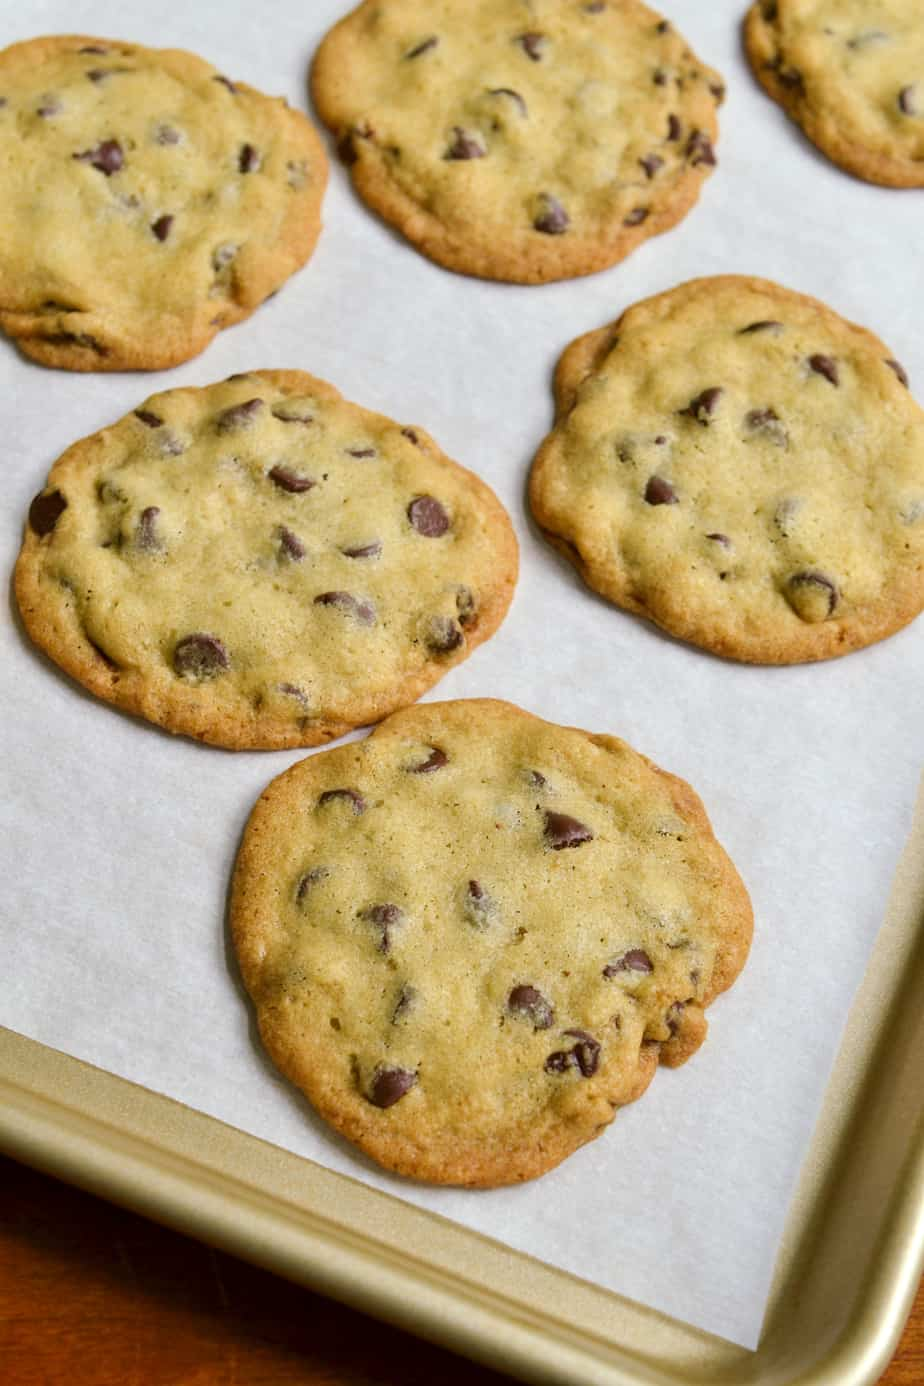 A baking sheet full of crispy chocolate chip cookies.